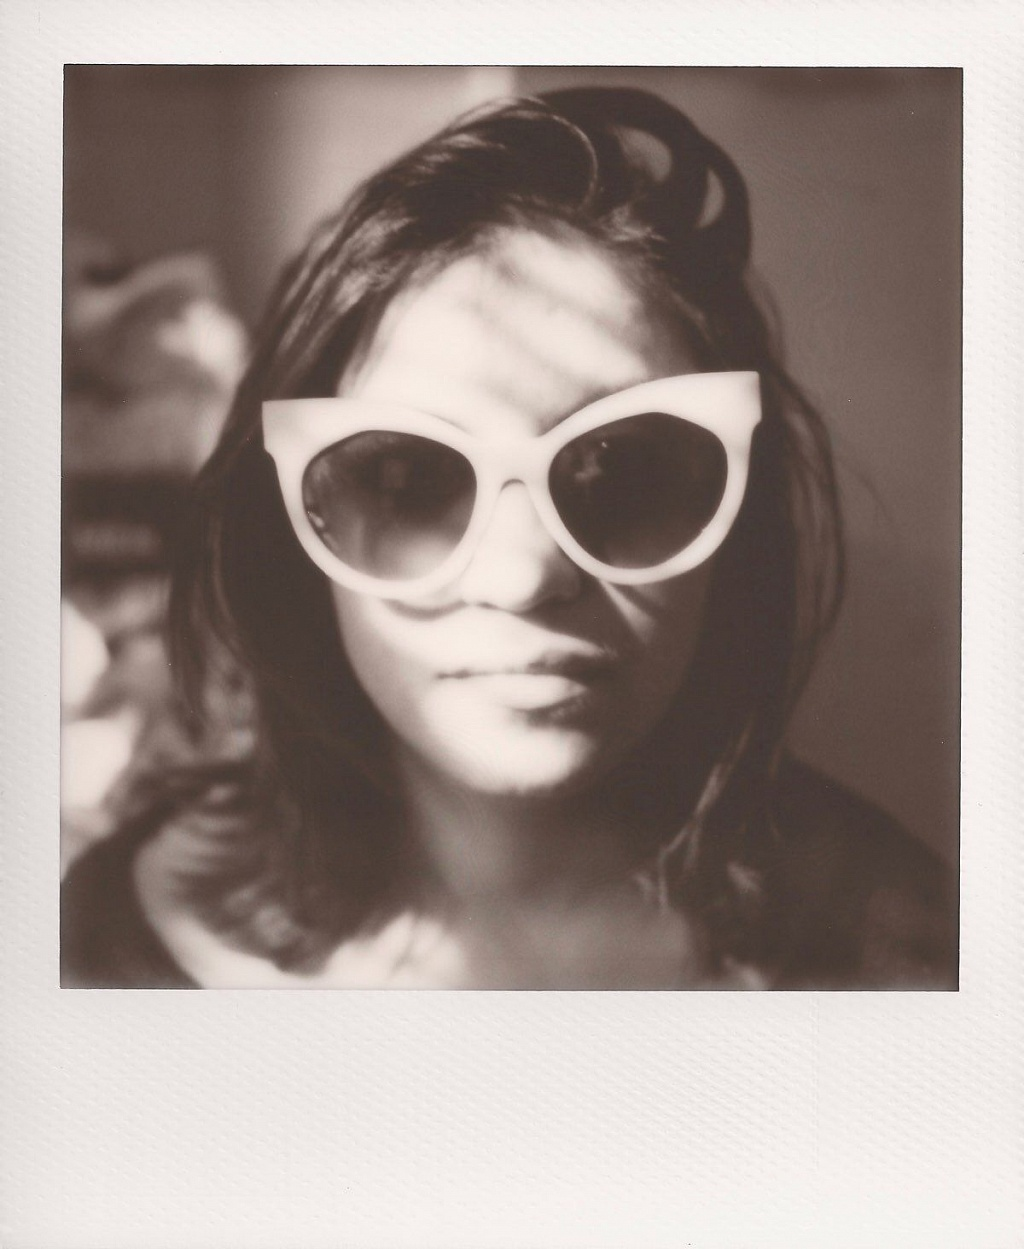 polaroid sx-70 black & white film (polaroid originals)